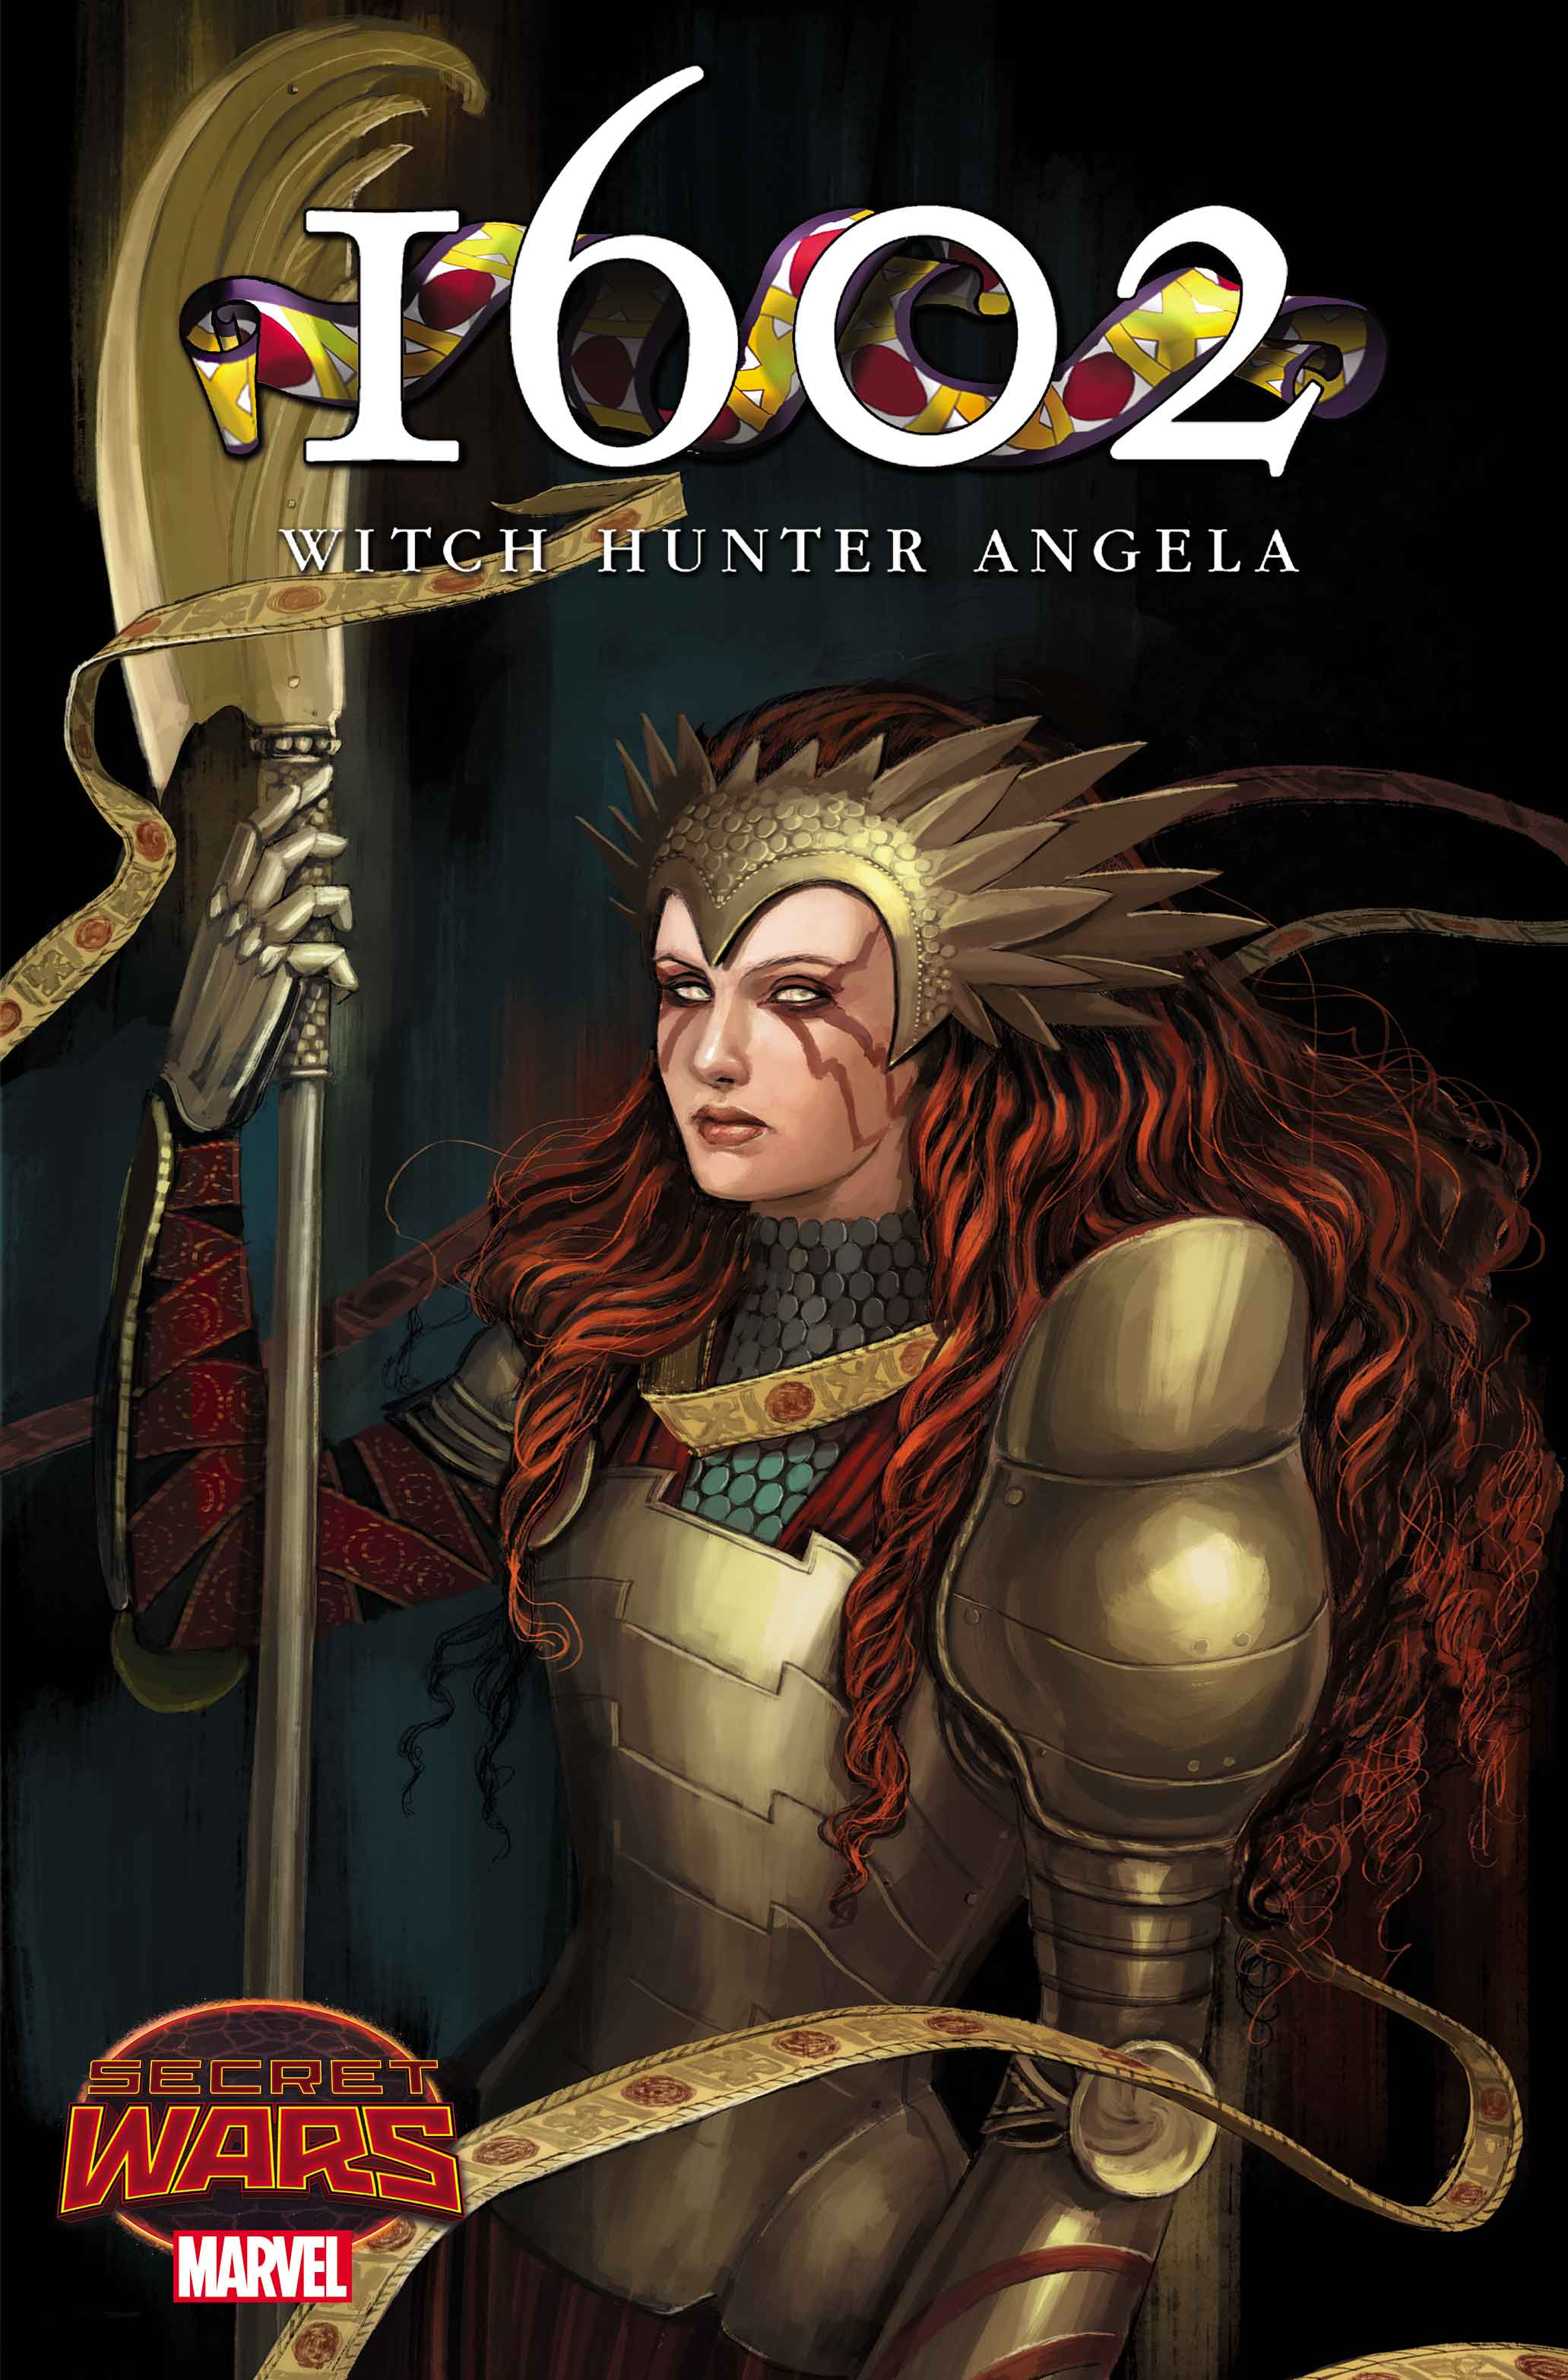 1602 Witch Hunter Angela (2015) #1